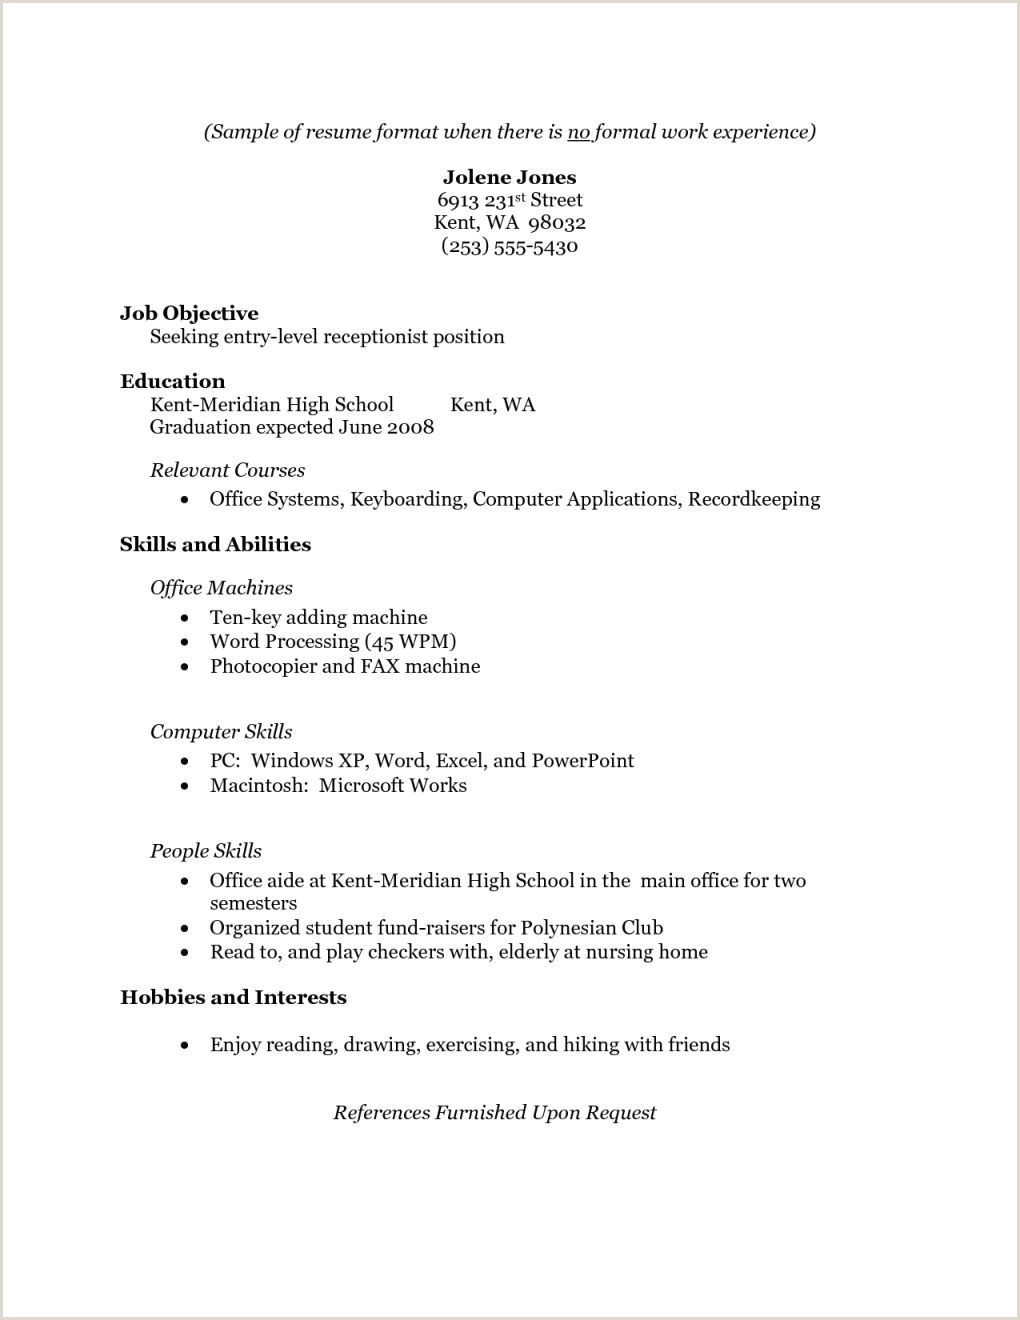 Resume for Receptionist with No Experience Elegant Resume